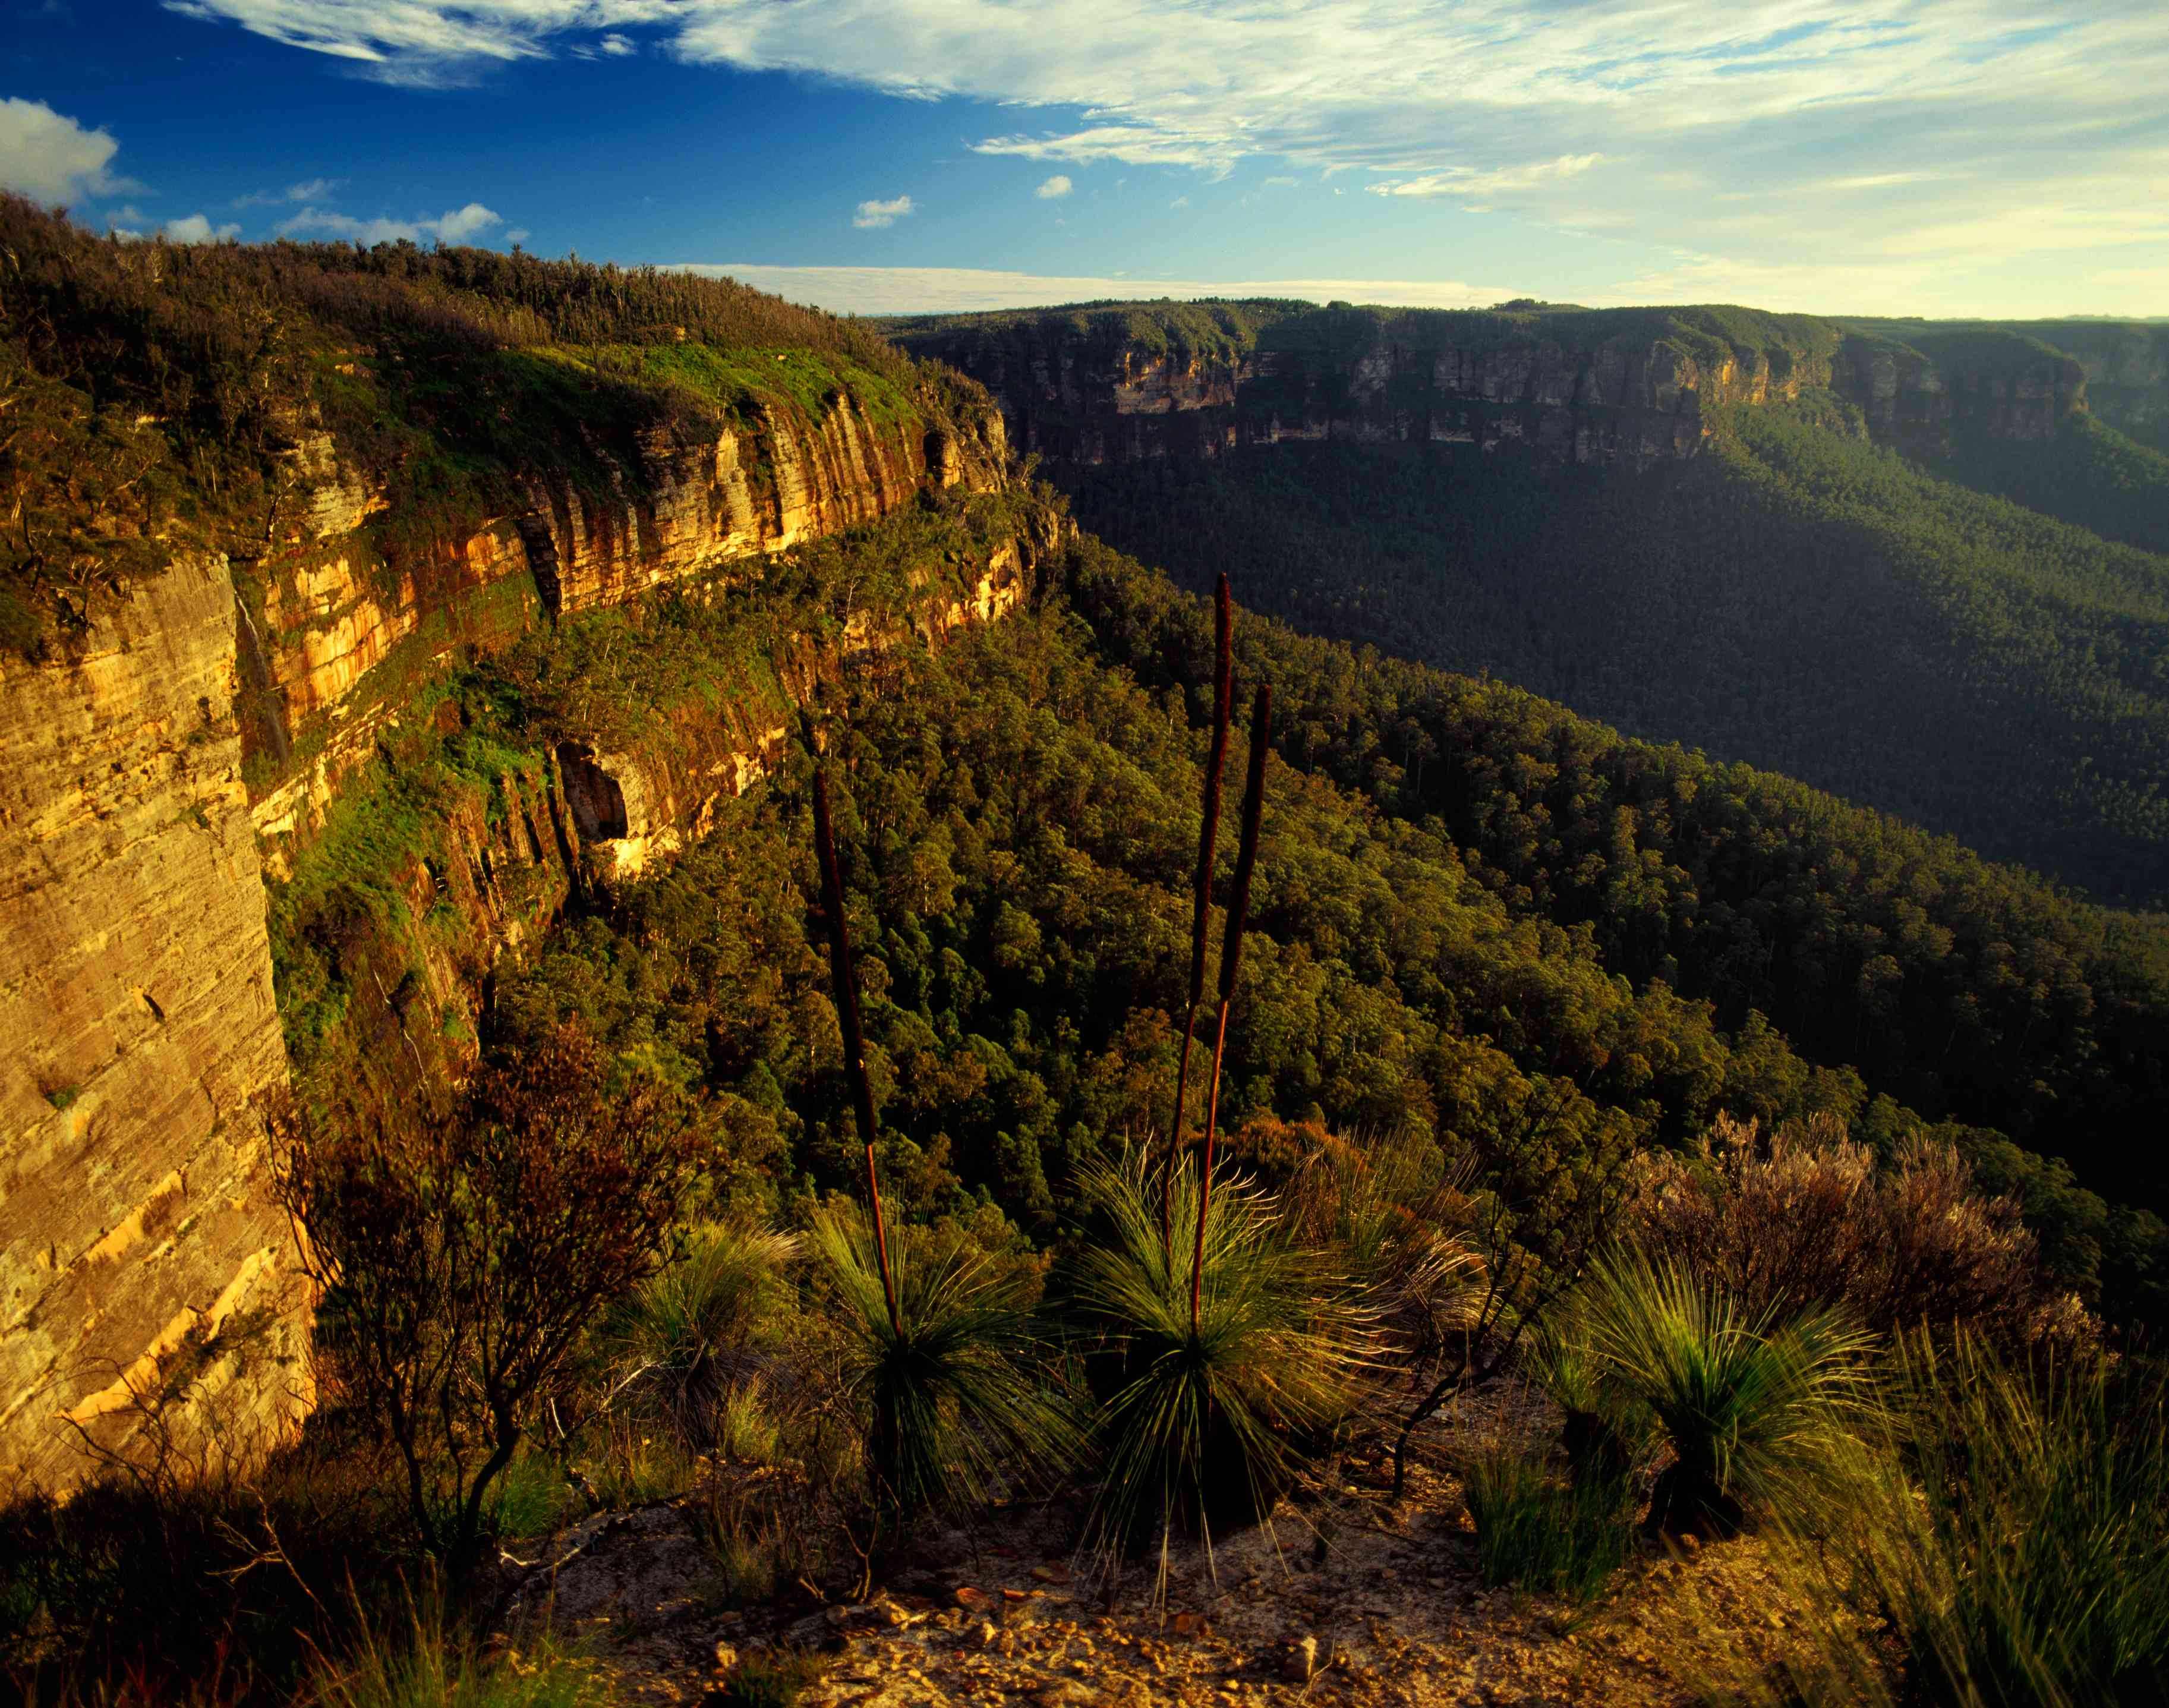 Grass Trees and escarpment from Evans Lookout in the Blue Mountains National Park.